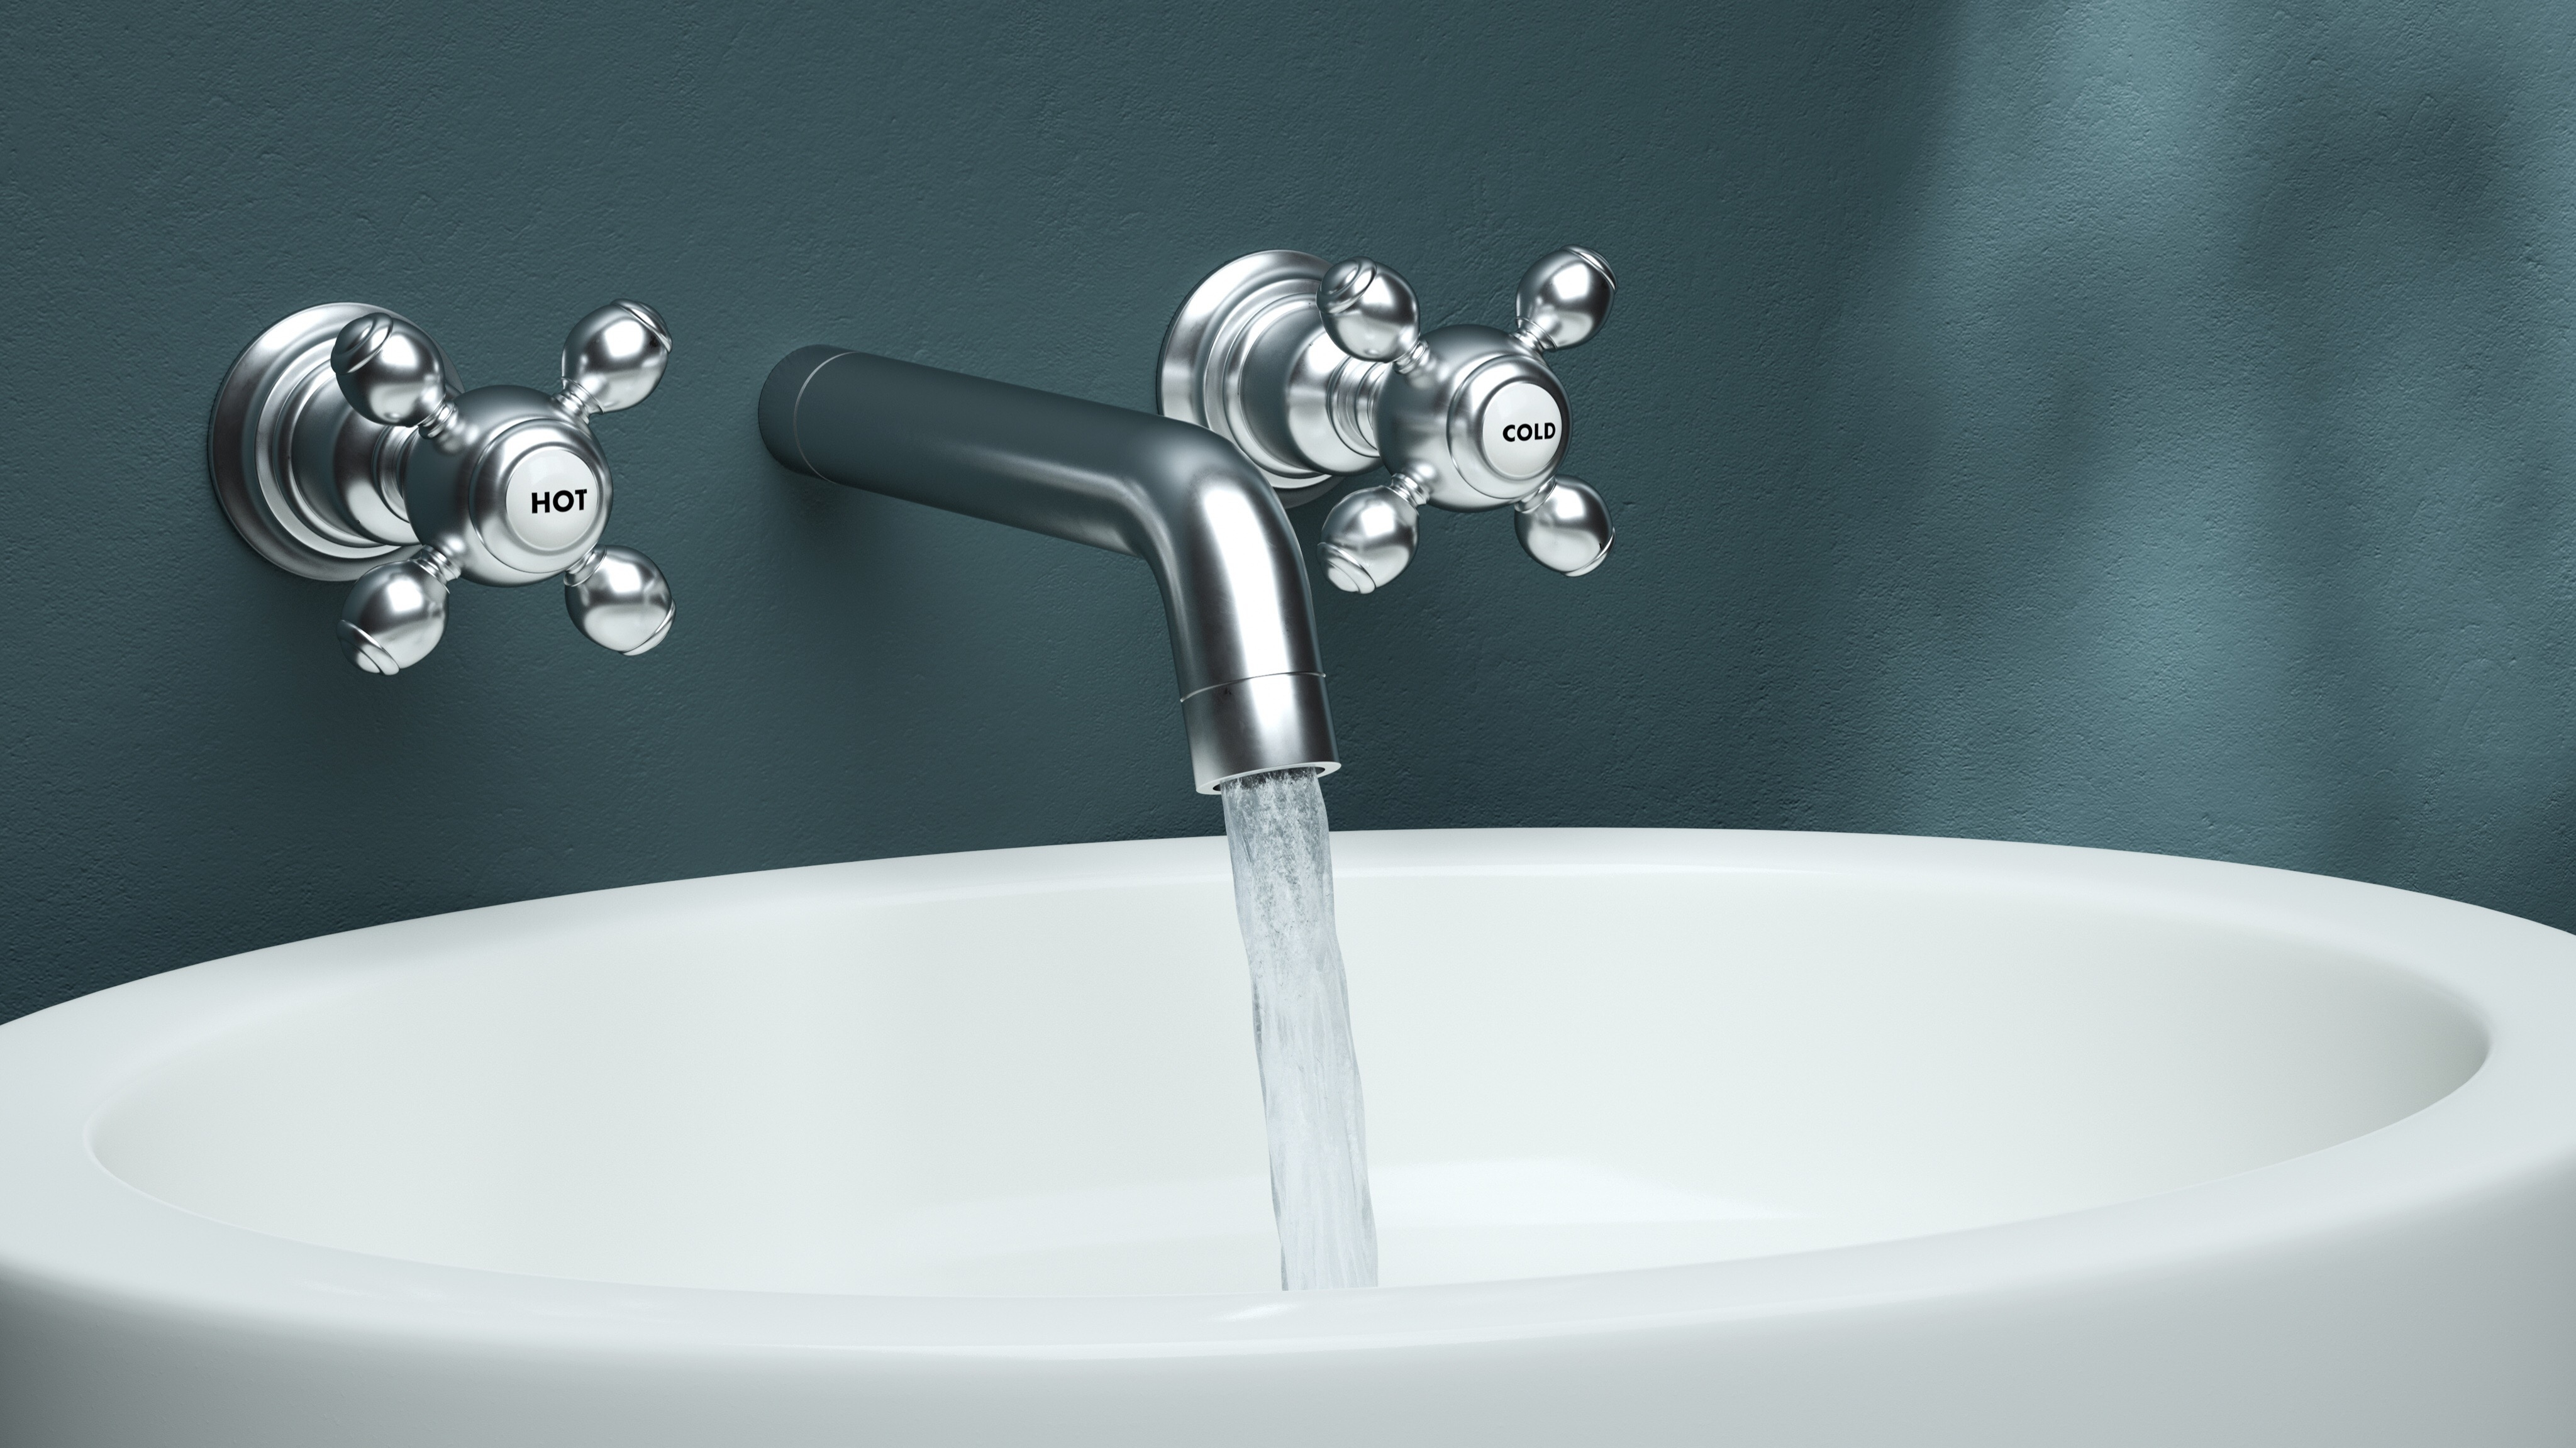 causes of a slow water stream from a bathroom faucet